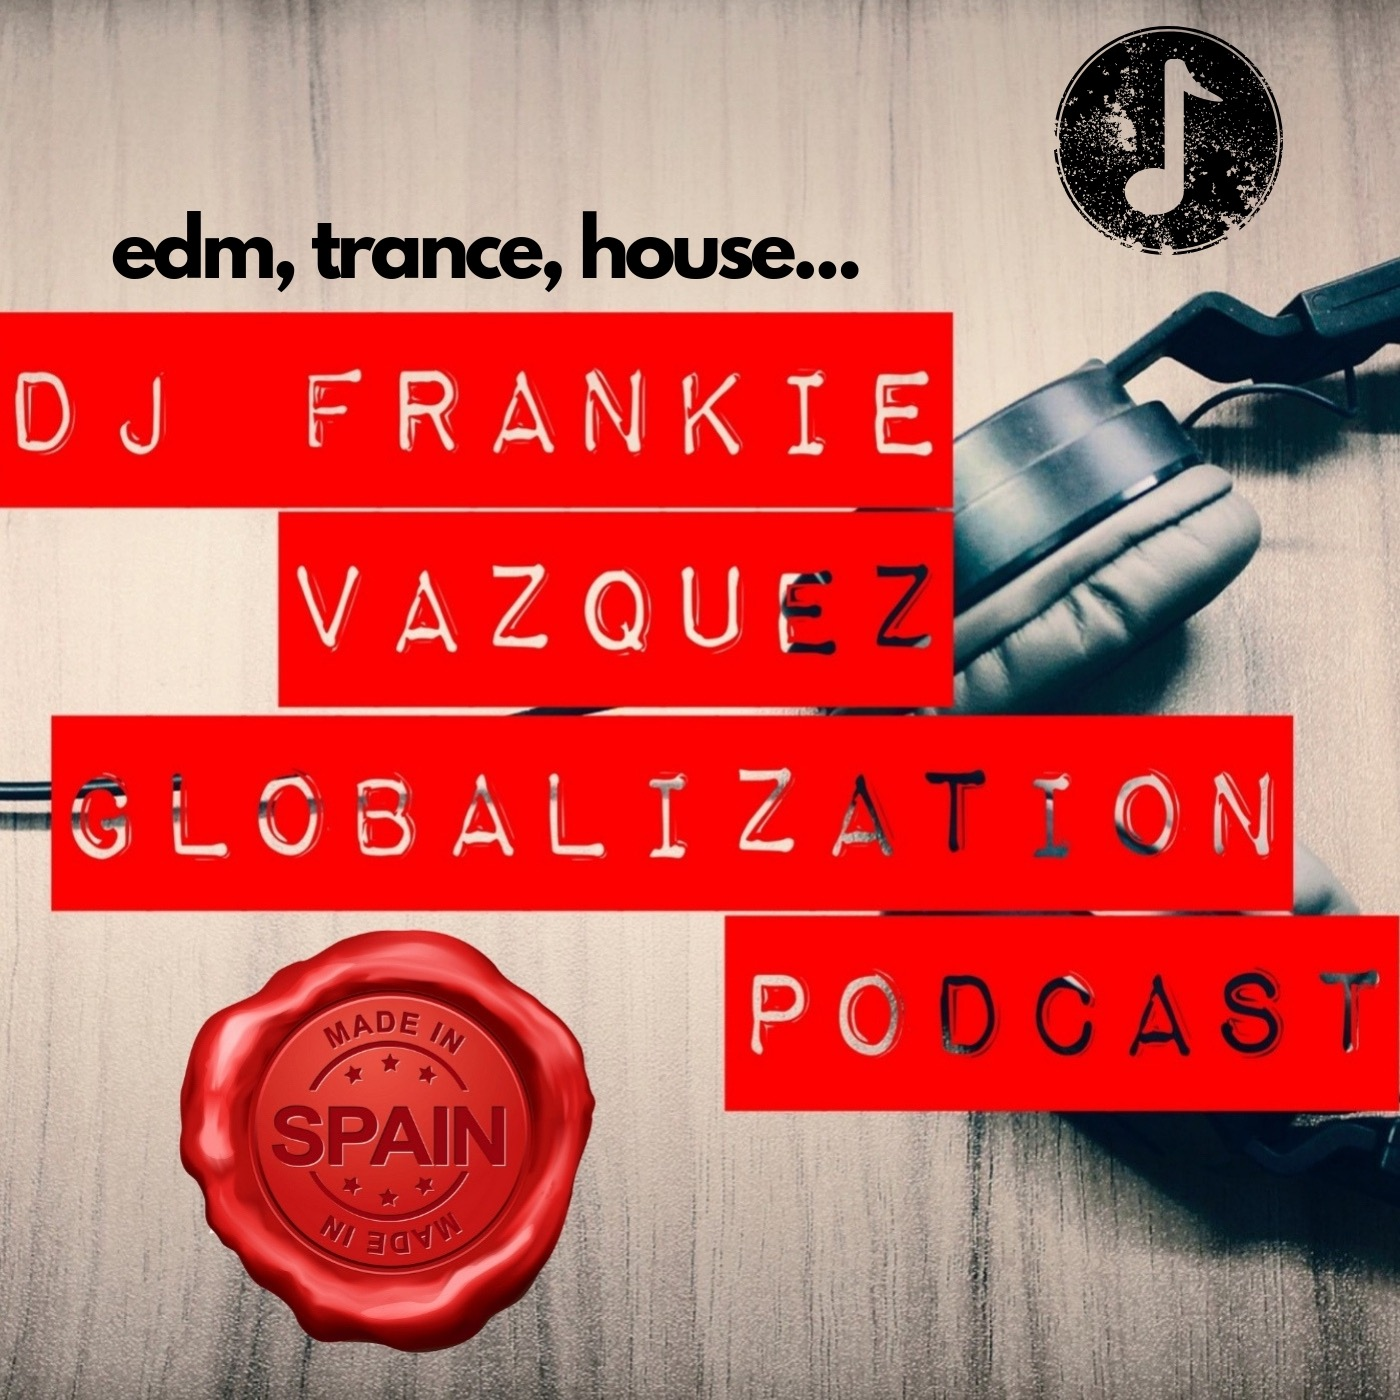 Globalization Music Podcast